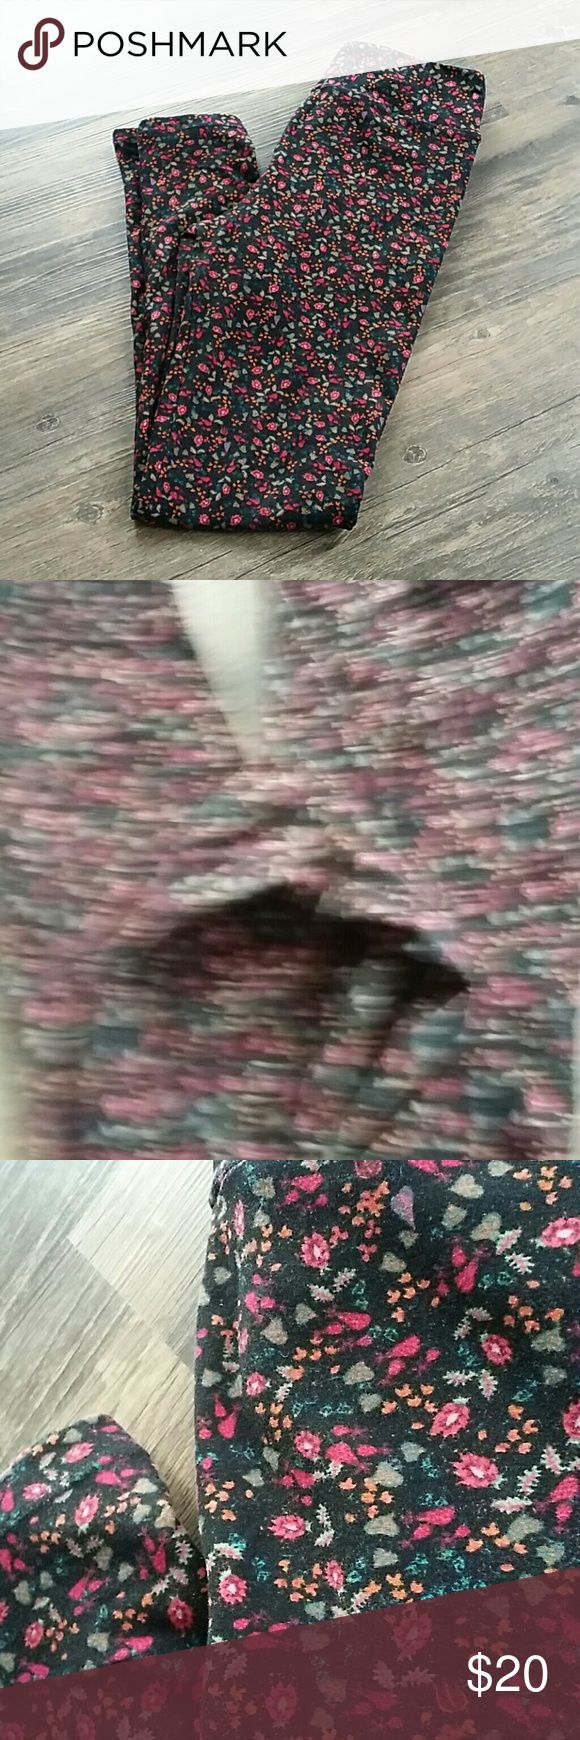 Lularoe OS leggings floral print Excellent used condition Lularoe OS leggings in a pretty floral print - black background with magenta cored flowers and olive colored leaves, also hints of blue and orange - no trades! Offers welcome! Bundle to save :) LuLaRoe Pants Leggings